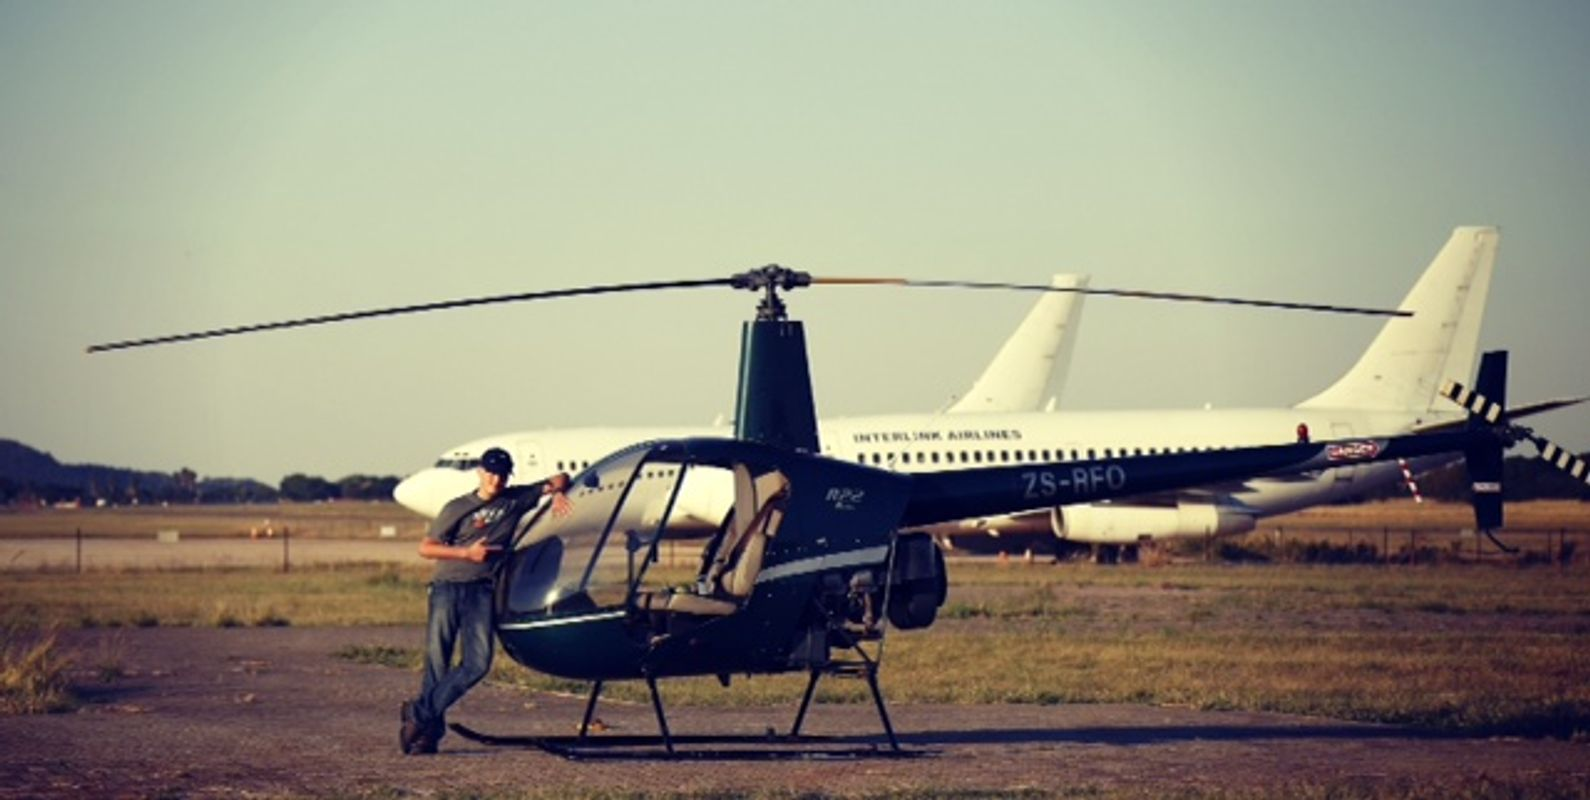 Pilot and helicopter